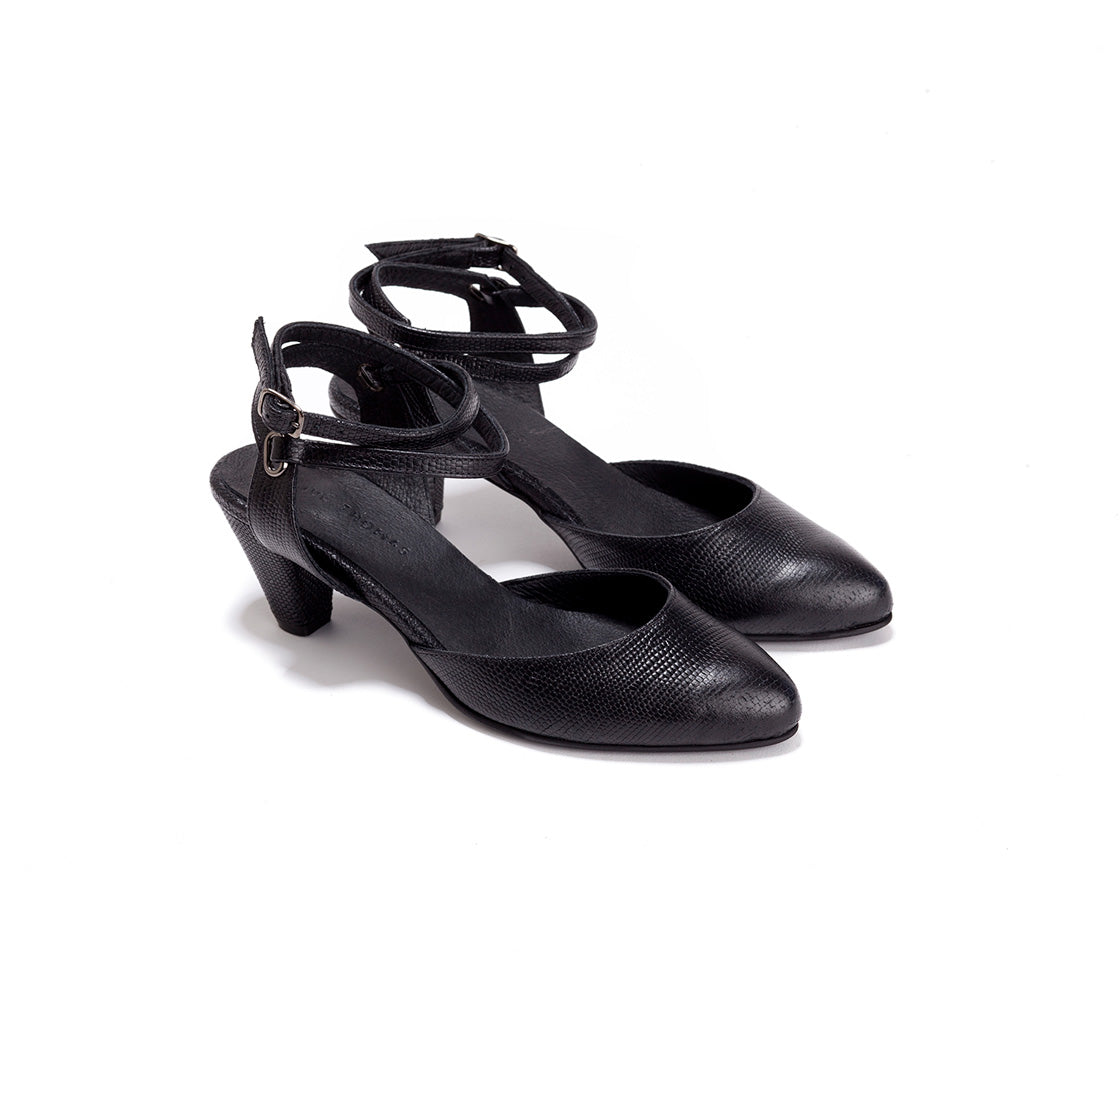 Marni - Black Leather Pumps